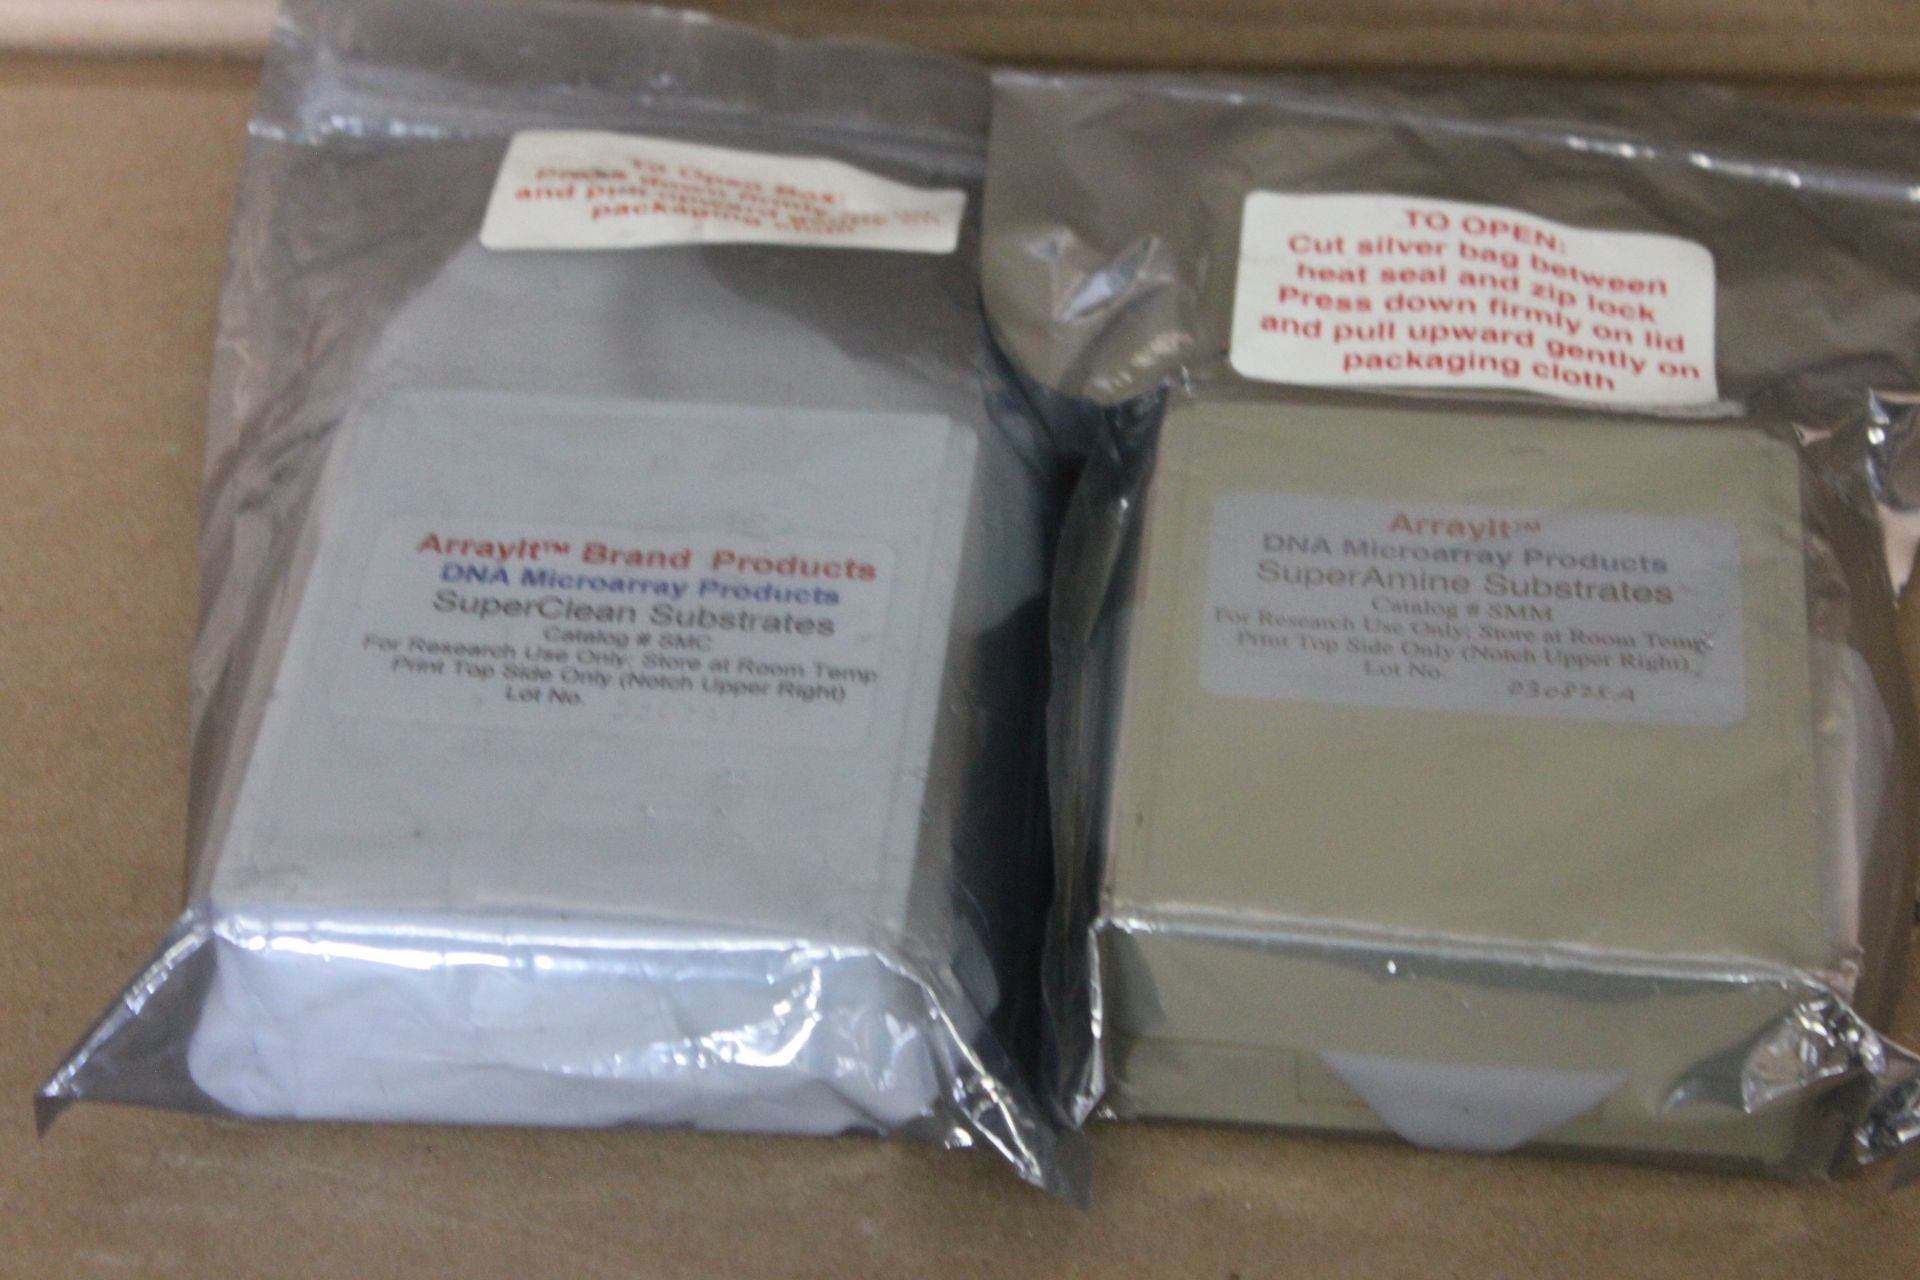 LOT OF 2 NEW ARRAYIT DNA MICROARRAY CASSETTES